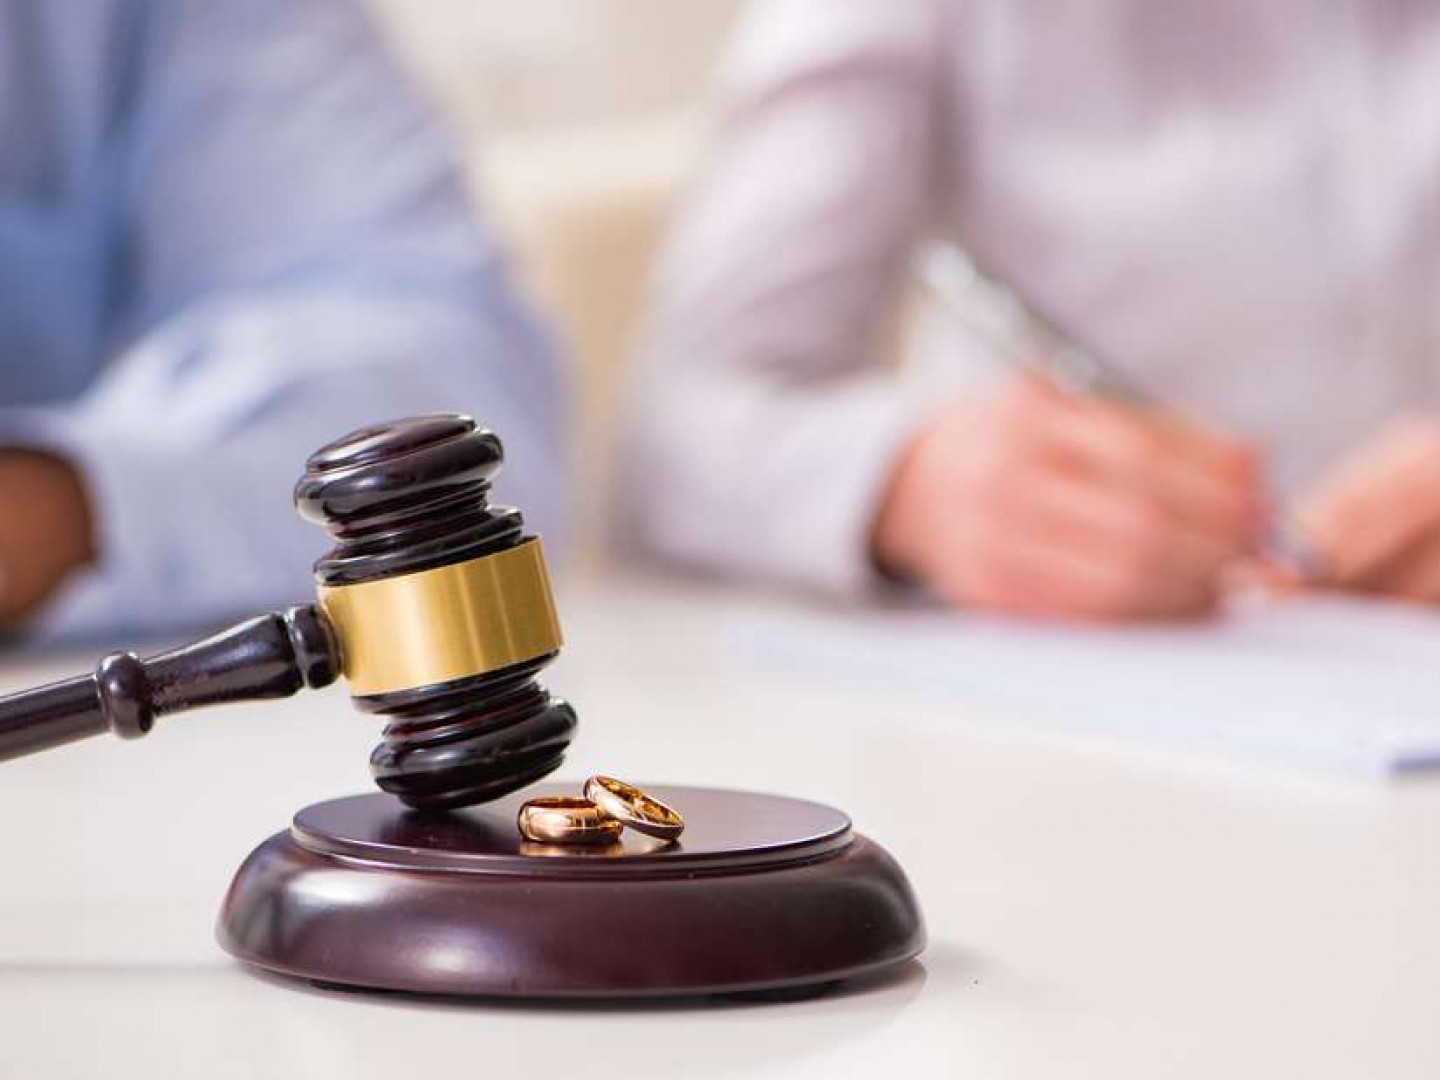 Contact Our Divorce Law Firm In Cherry Hill, NJ